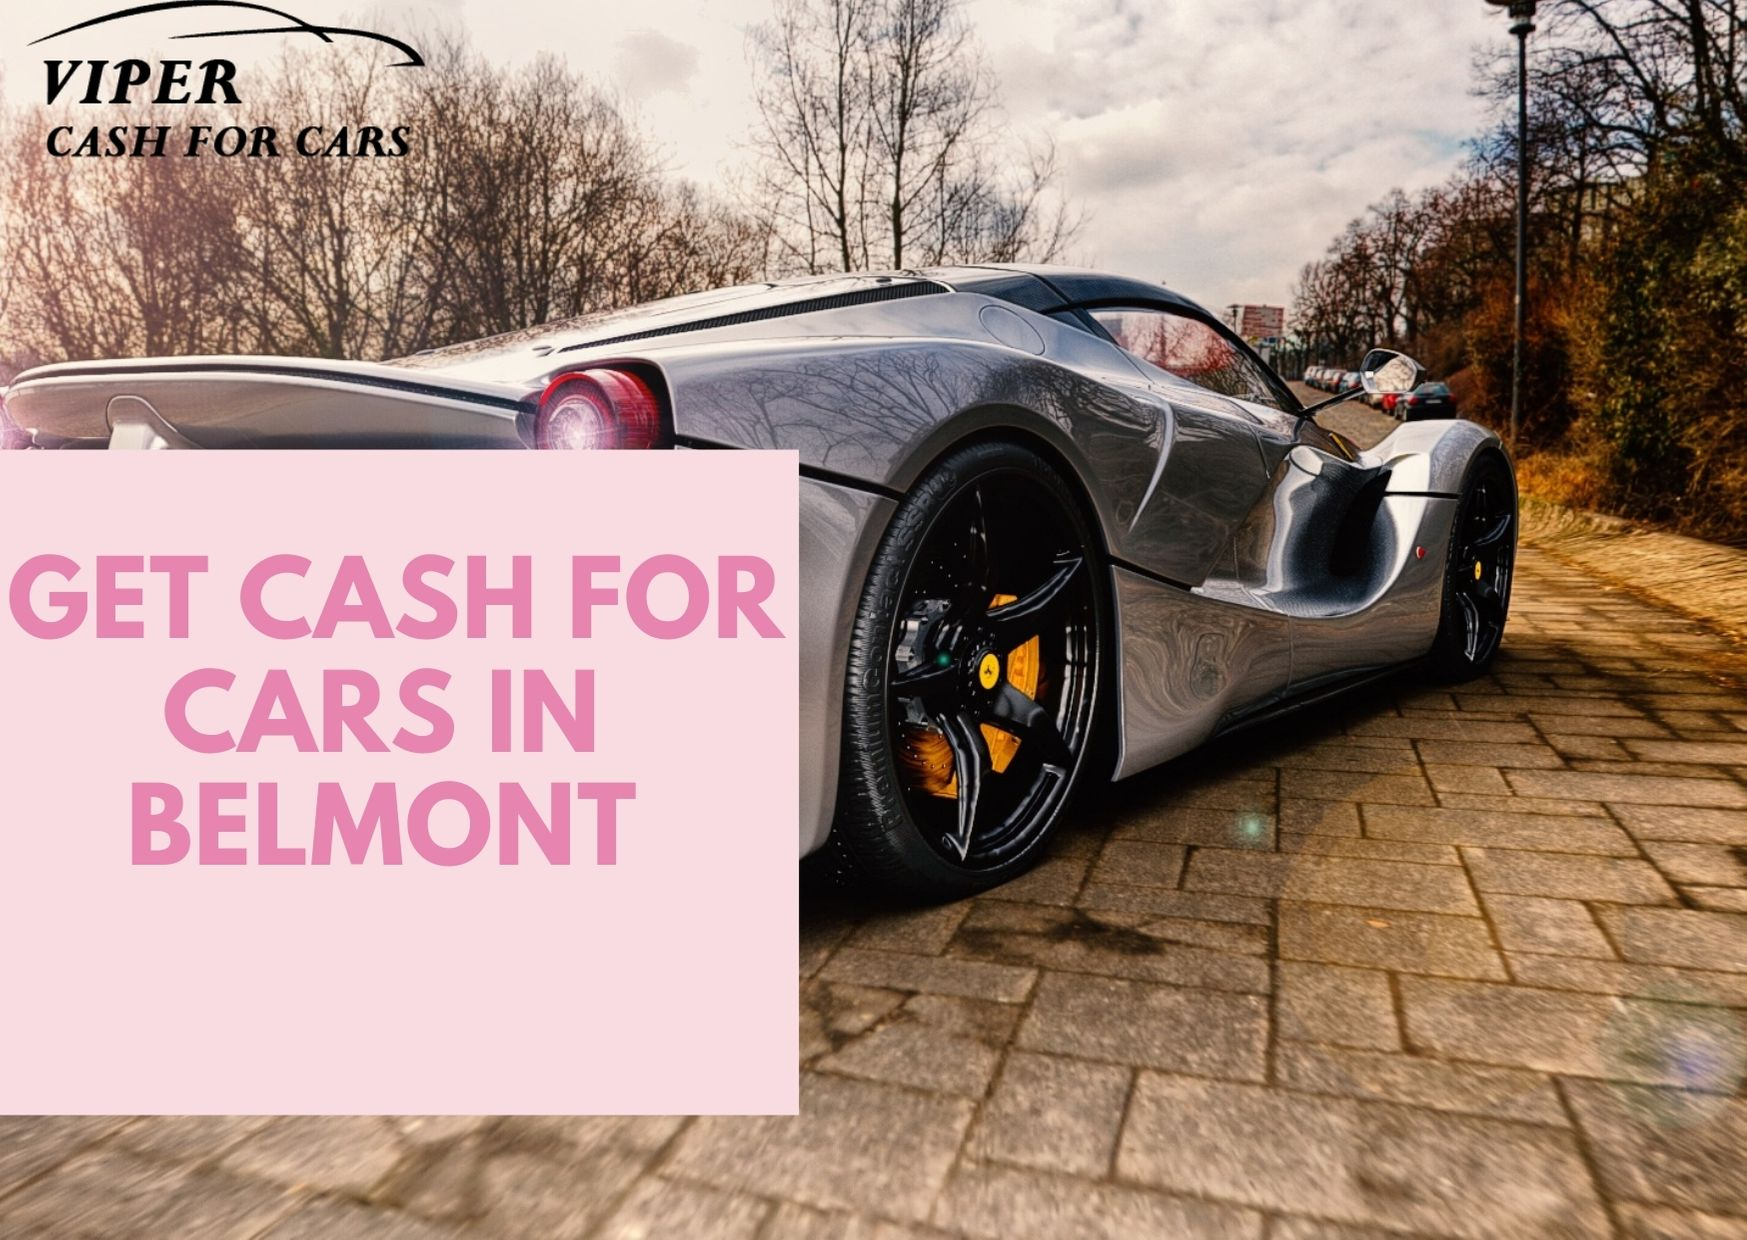 How can you get cash for cars in Belmont?